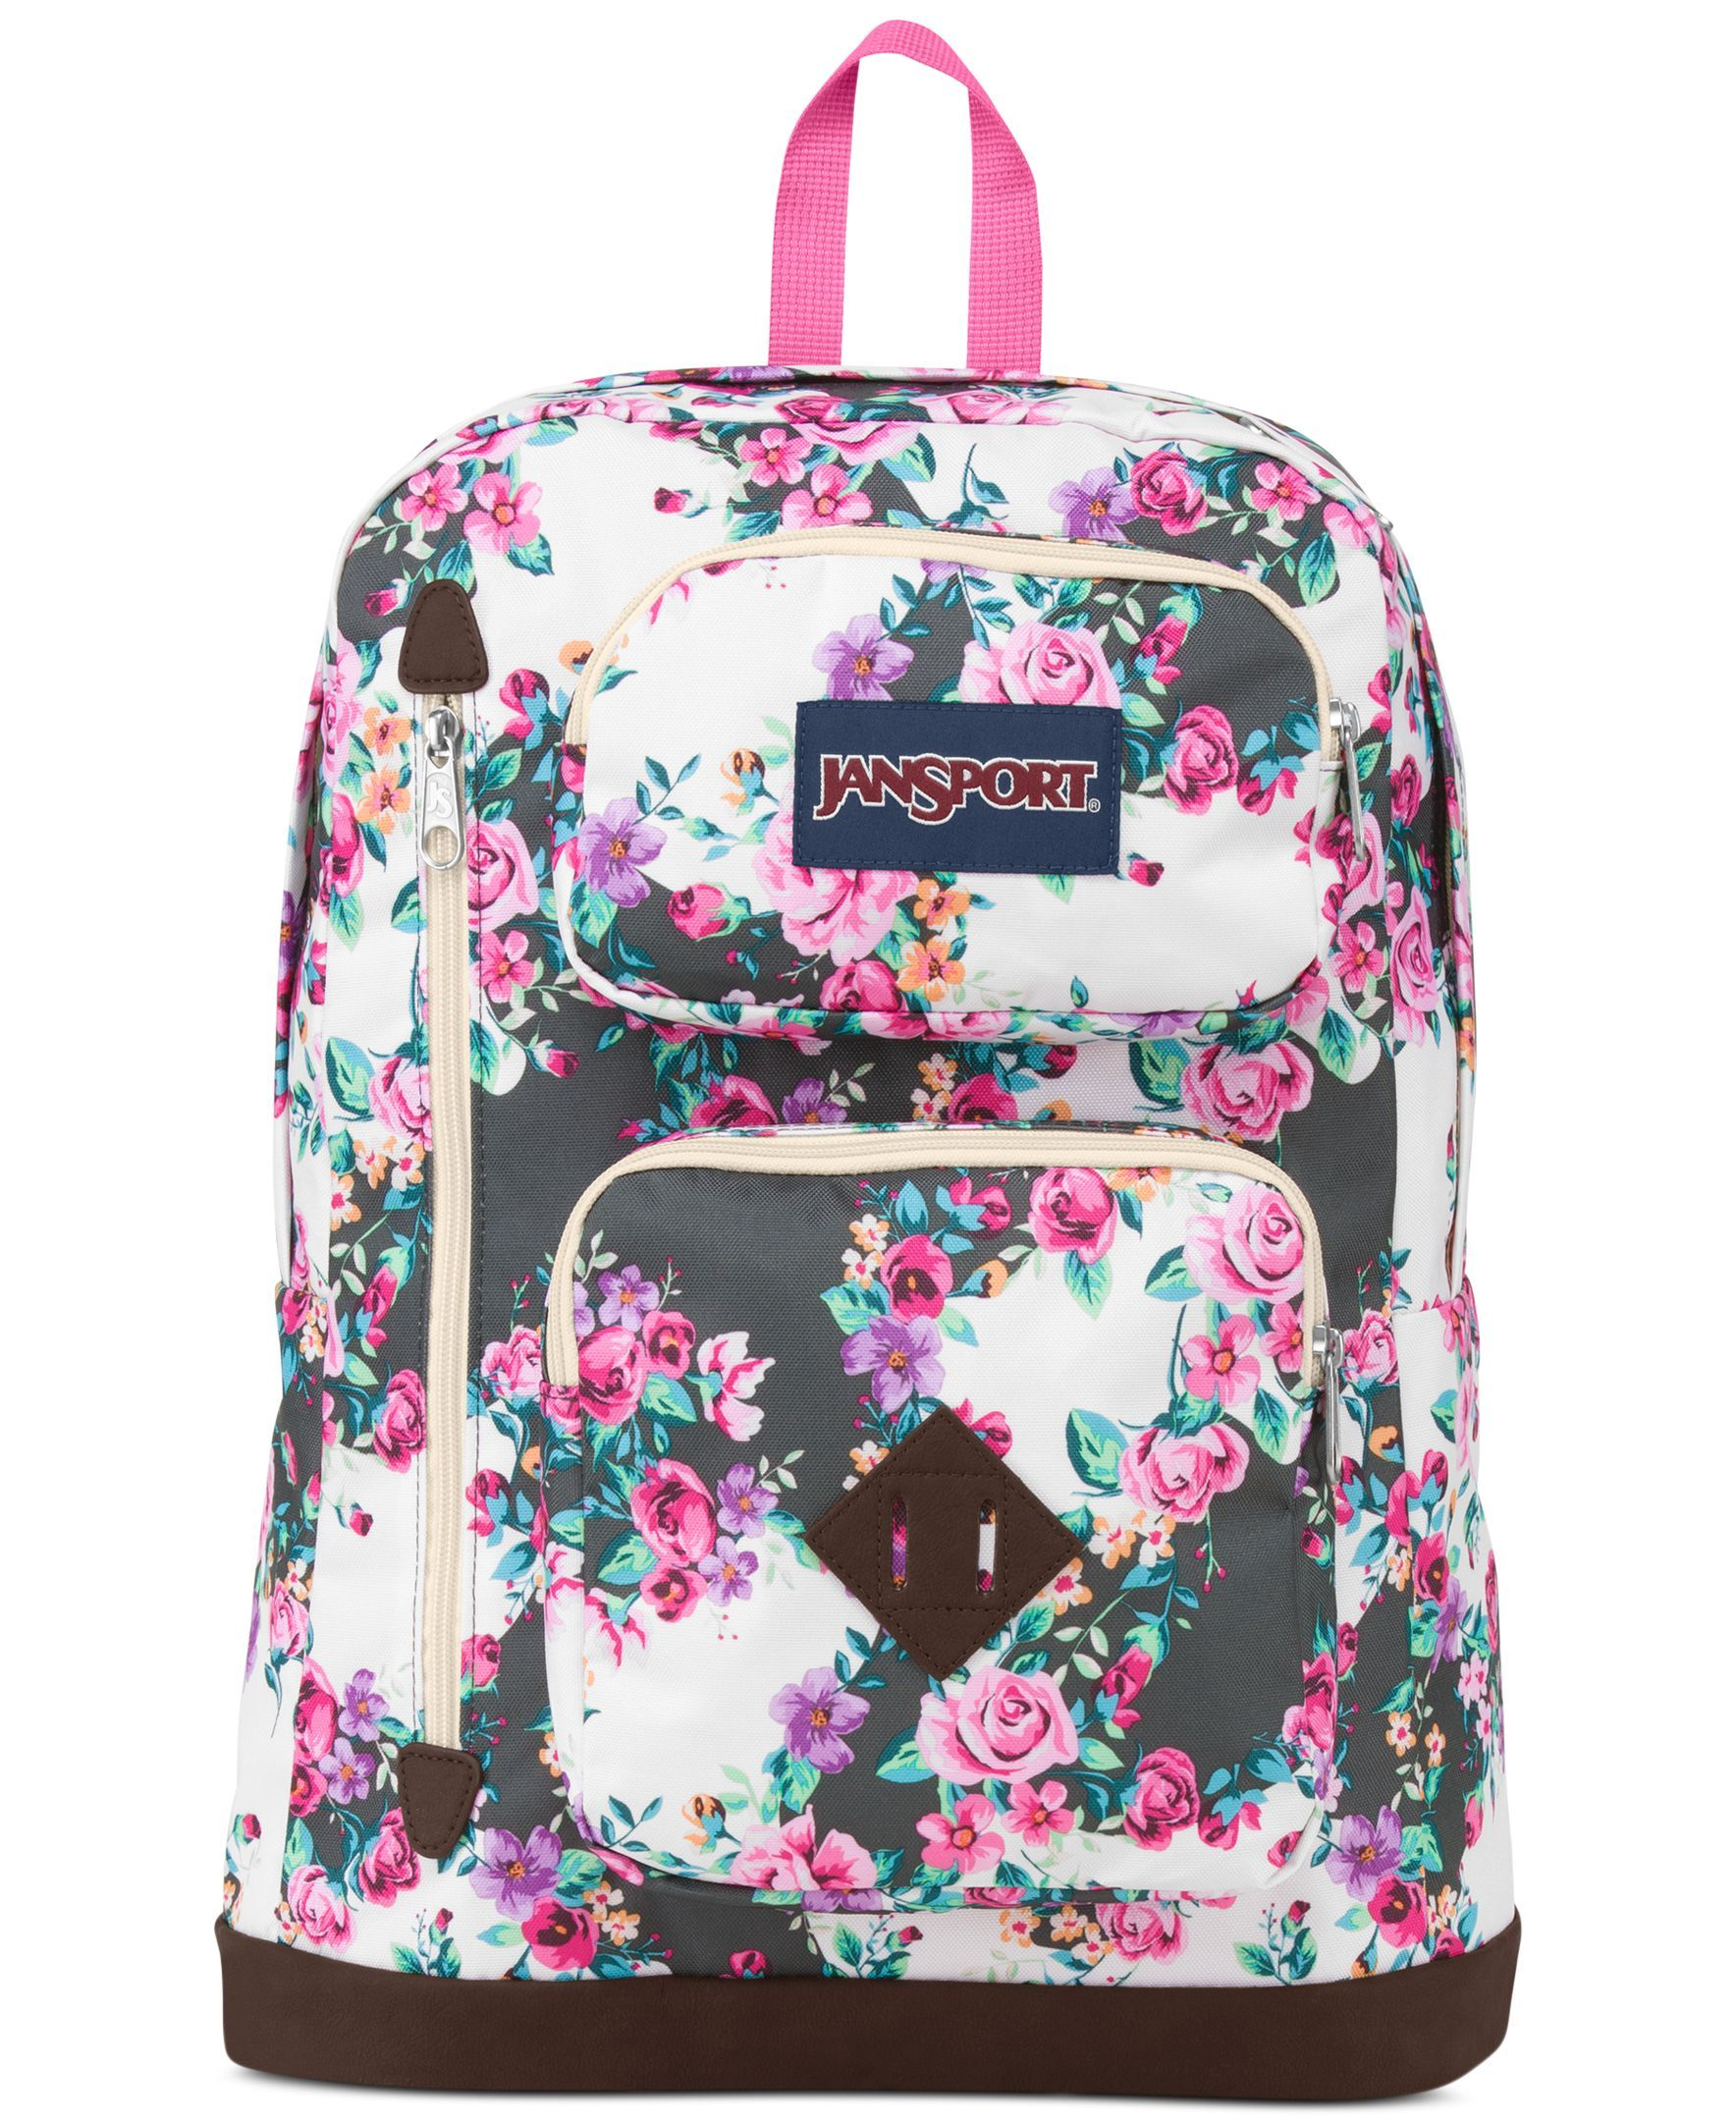 Jansport Austin Backpack Multi Grey Floral Flourish Floral